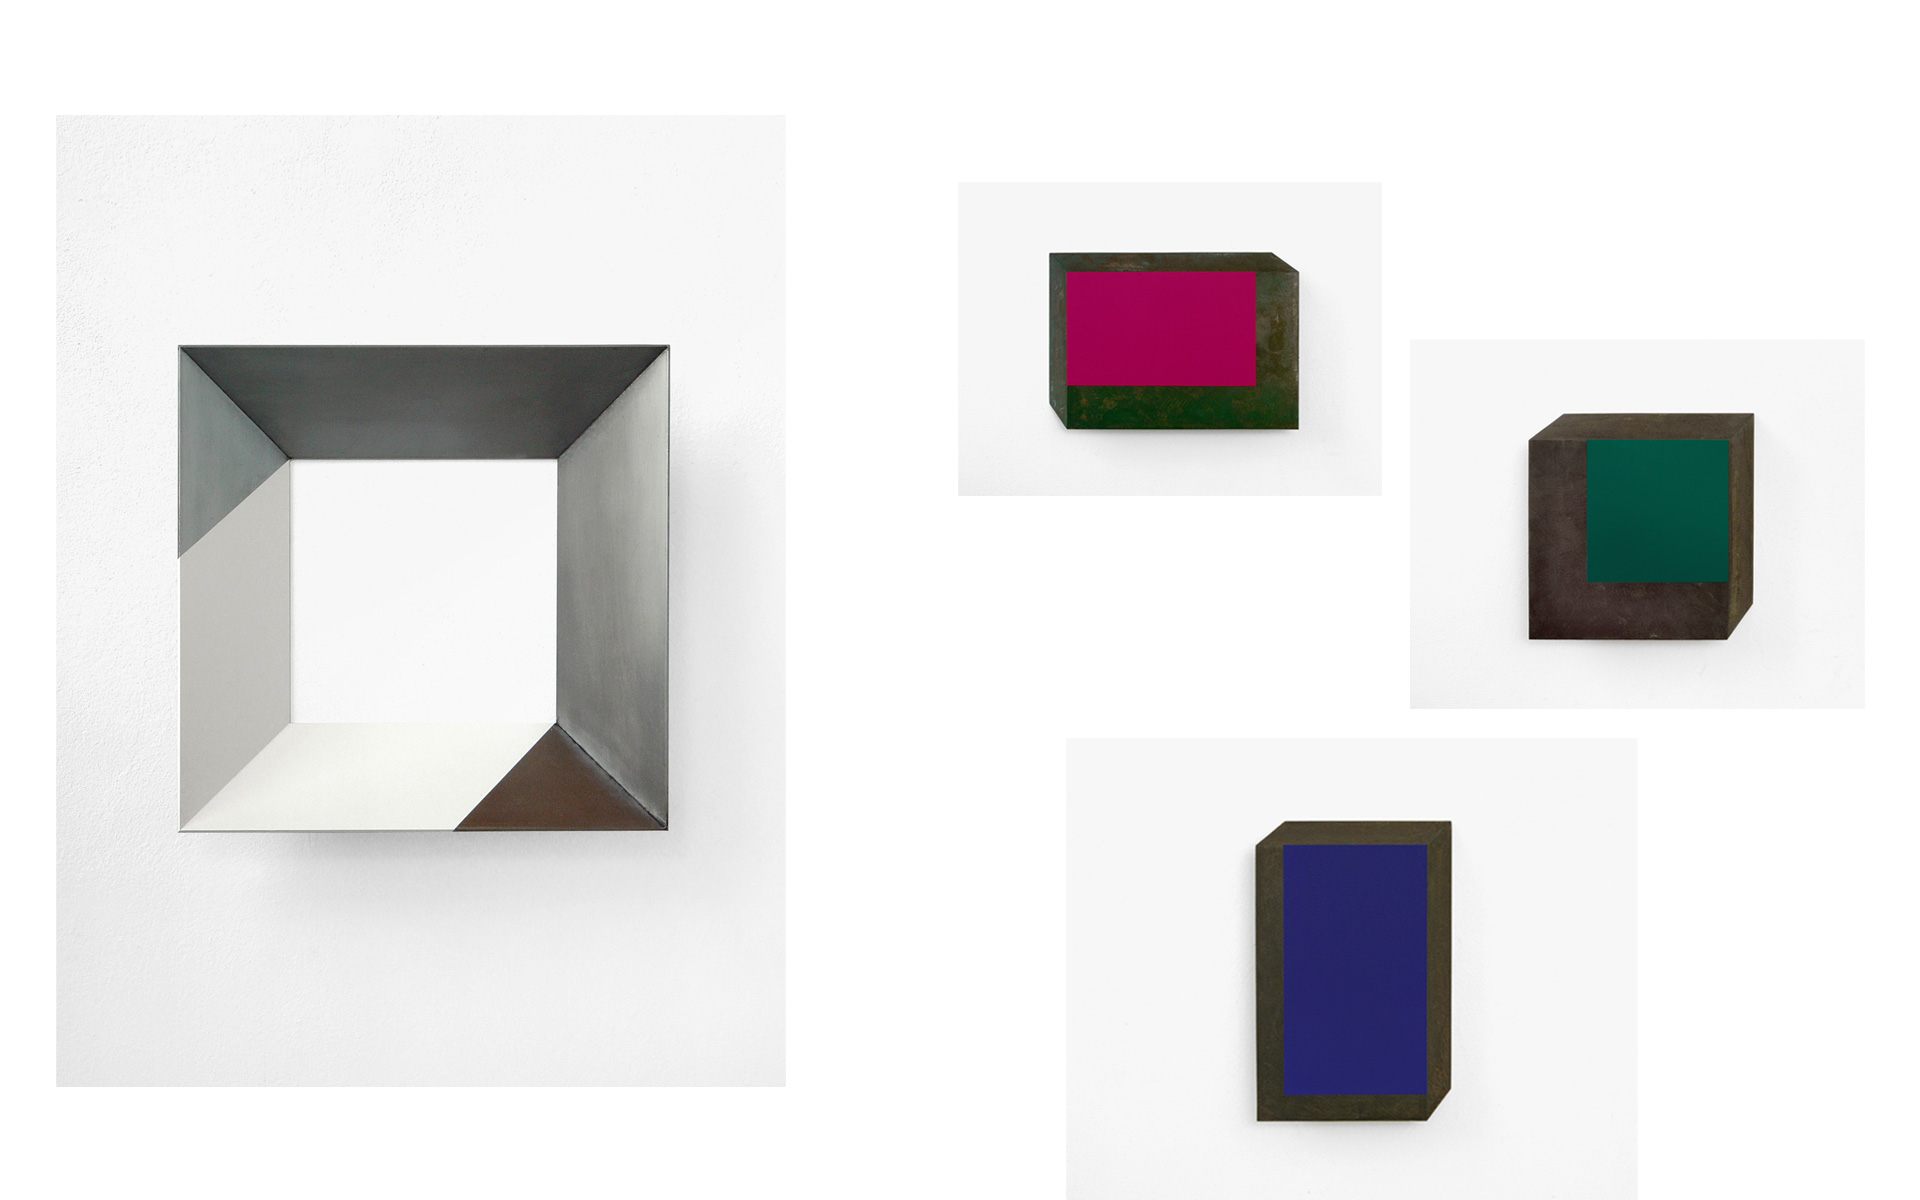 left: CUBE, 2005 Acrylic on steel 35.5 × 35.5 × 7 cm / above: O. T. (magenta), 2004 Acrylic on steel 25 × 35.4 × 4.3 cmmiddle: O. T. (hellgrün), 2004 Acrylic on steel 29.8 × 29.8 × 6.5 cm / below: O. T. (blau), 2005 Acrylic on steel 40.4 × 22.5 × 3.5 cm - Photos: Christoph Valentien